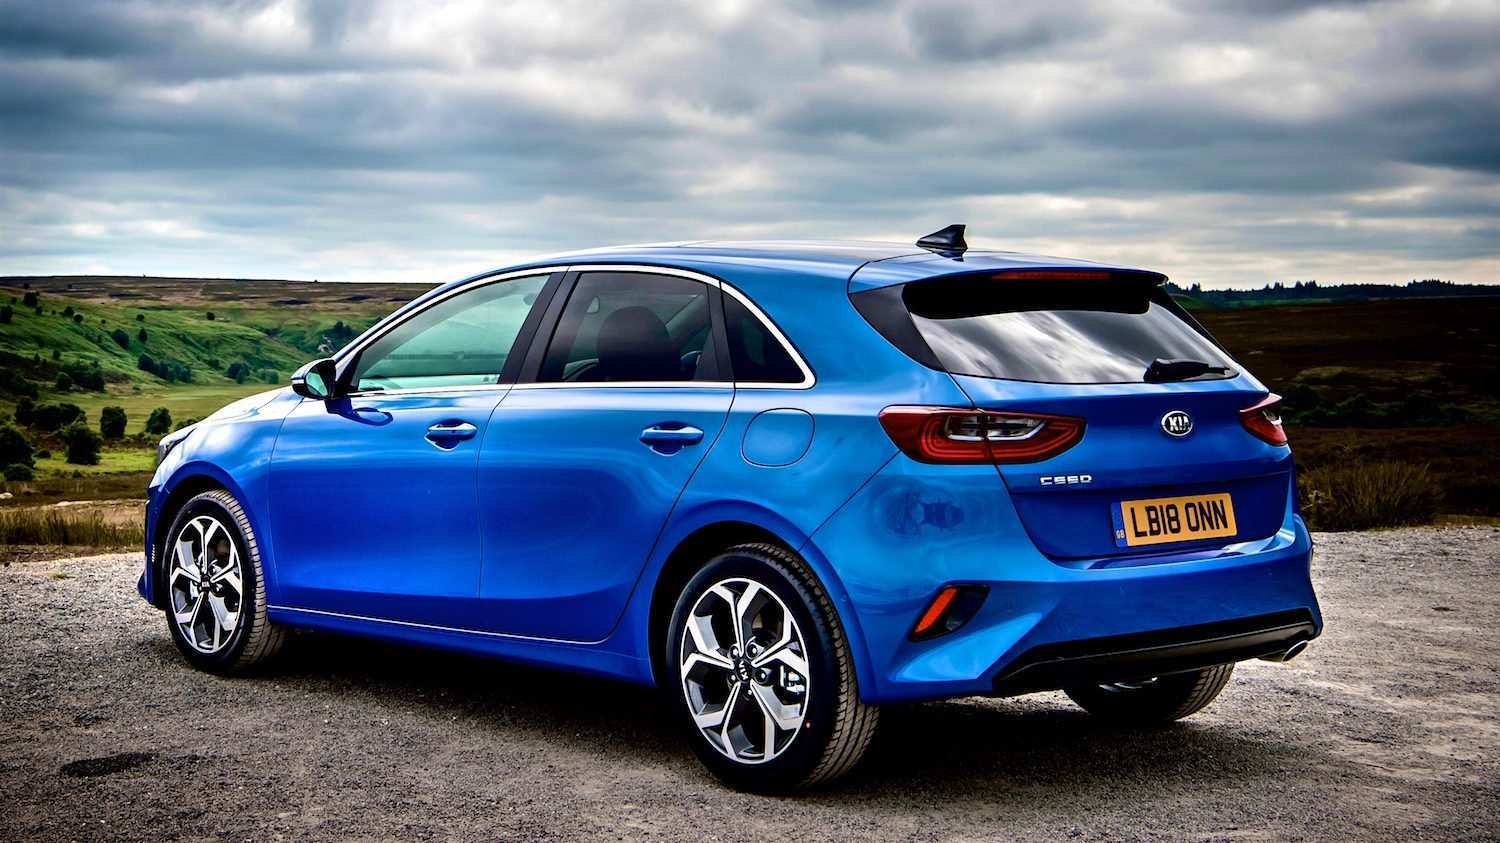 69 Gallery of Best Kia Ceed 2019 Youtube New Review Engine with Best Kia Ceed 2019 Youtube New Review